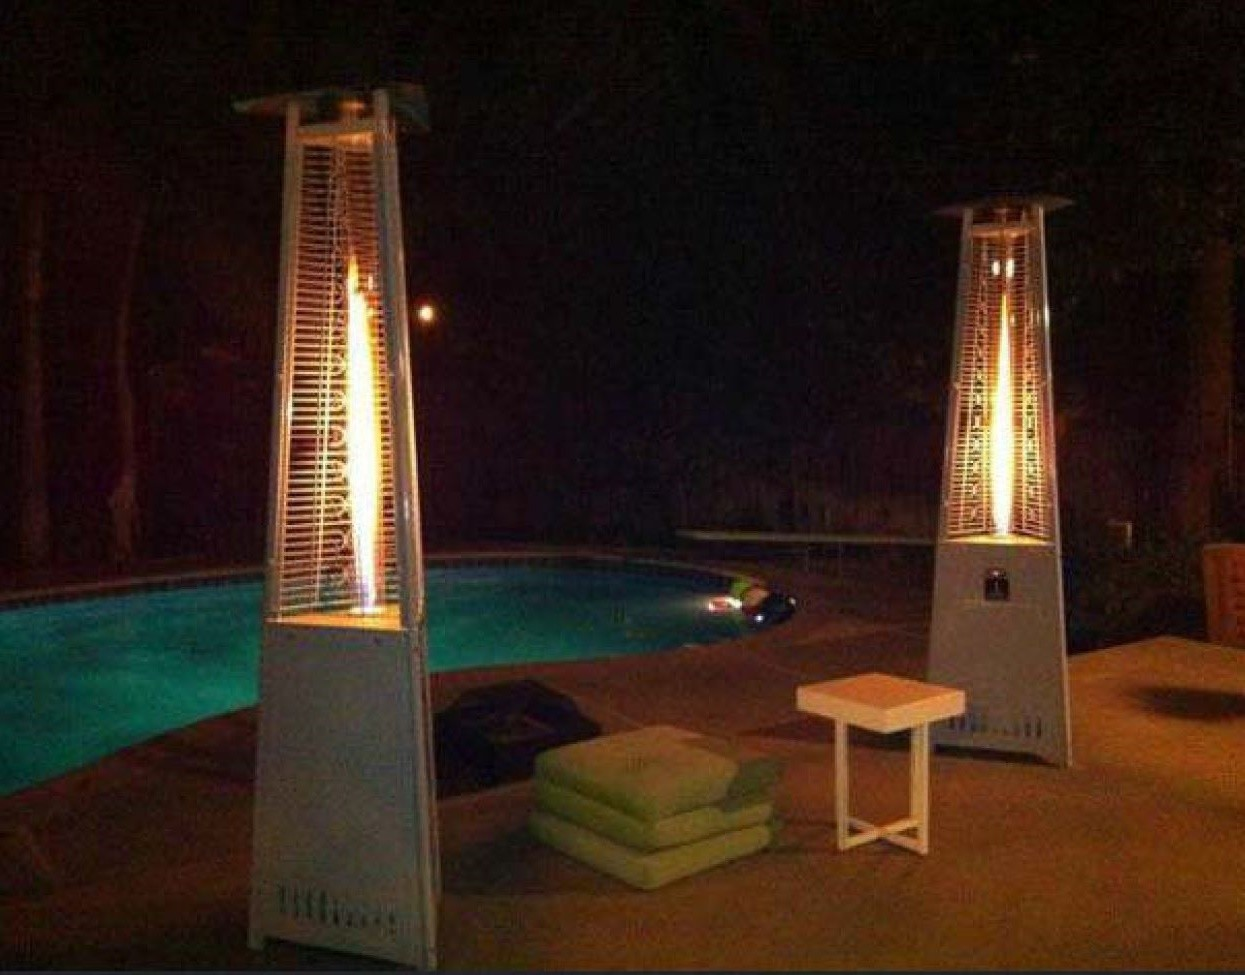 https://patioheaterdubai.com/wp-content/uploads/2016/09/Outdoor-Gas-Heater-in-Swimming-Pool.jpg